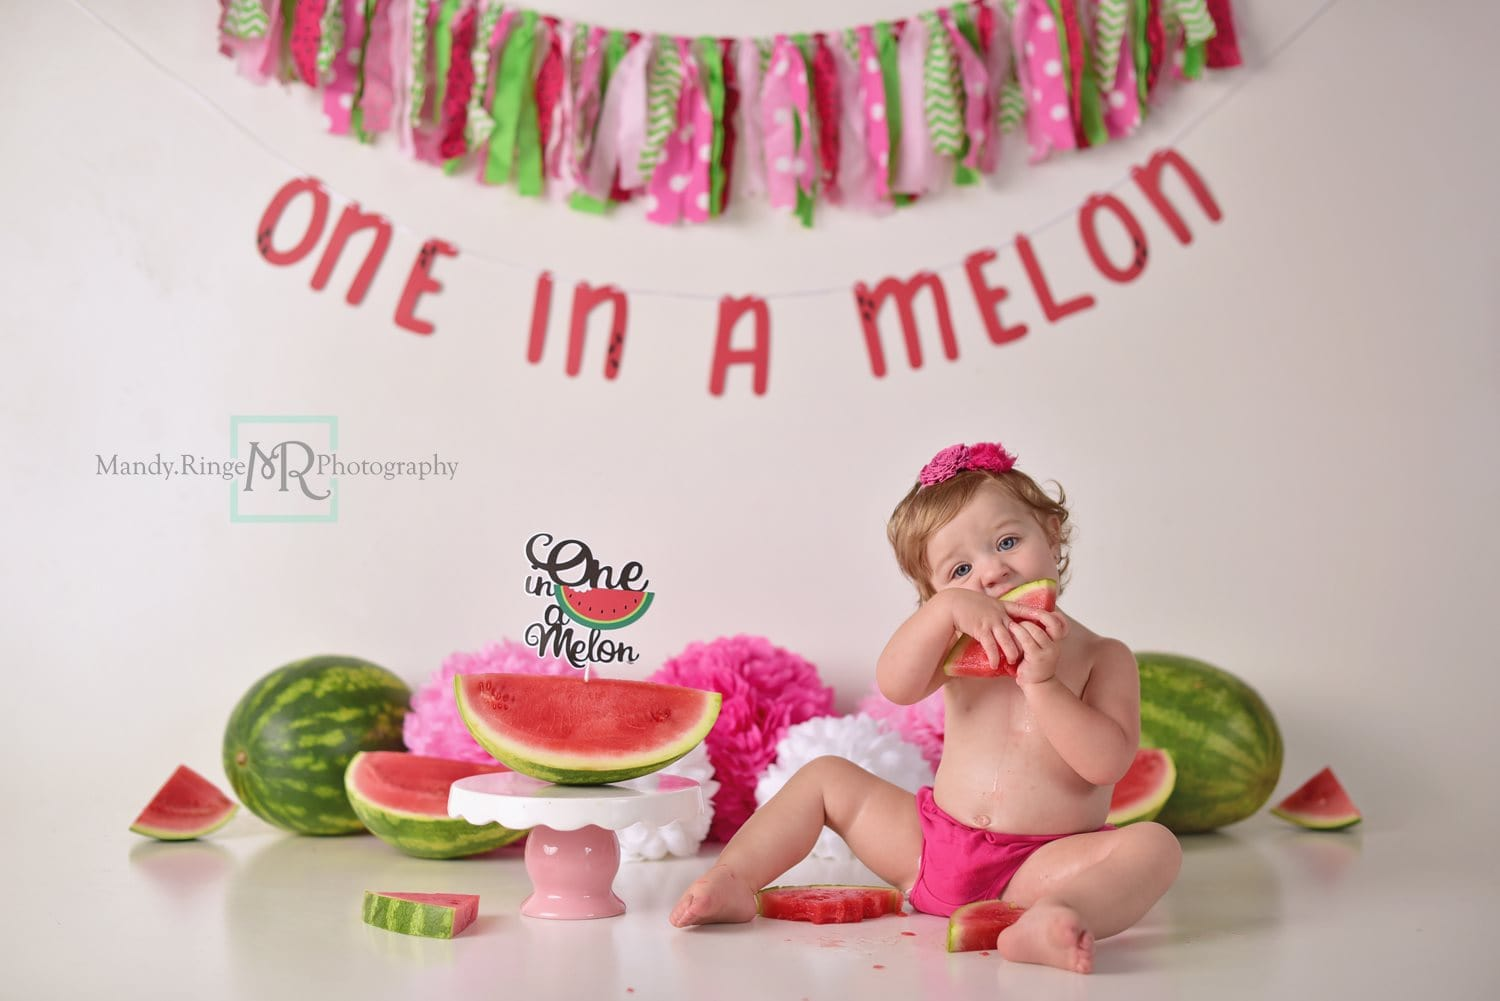 Load image into Gallery viewer, Kate Summer One in A Melon First Birthday Backdrop for Photography Designed by Mandy Ringe Photography